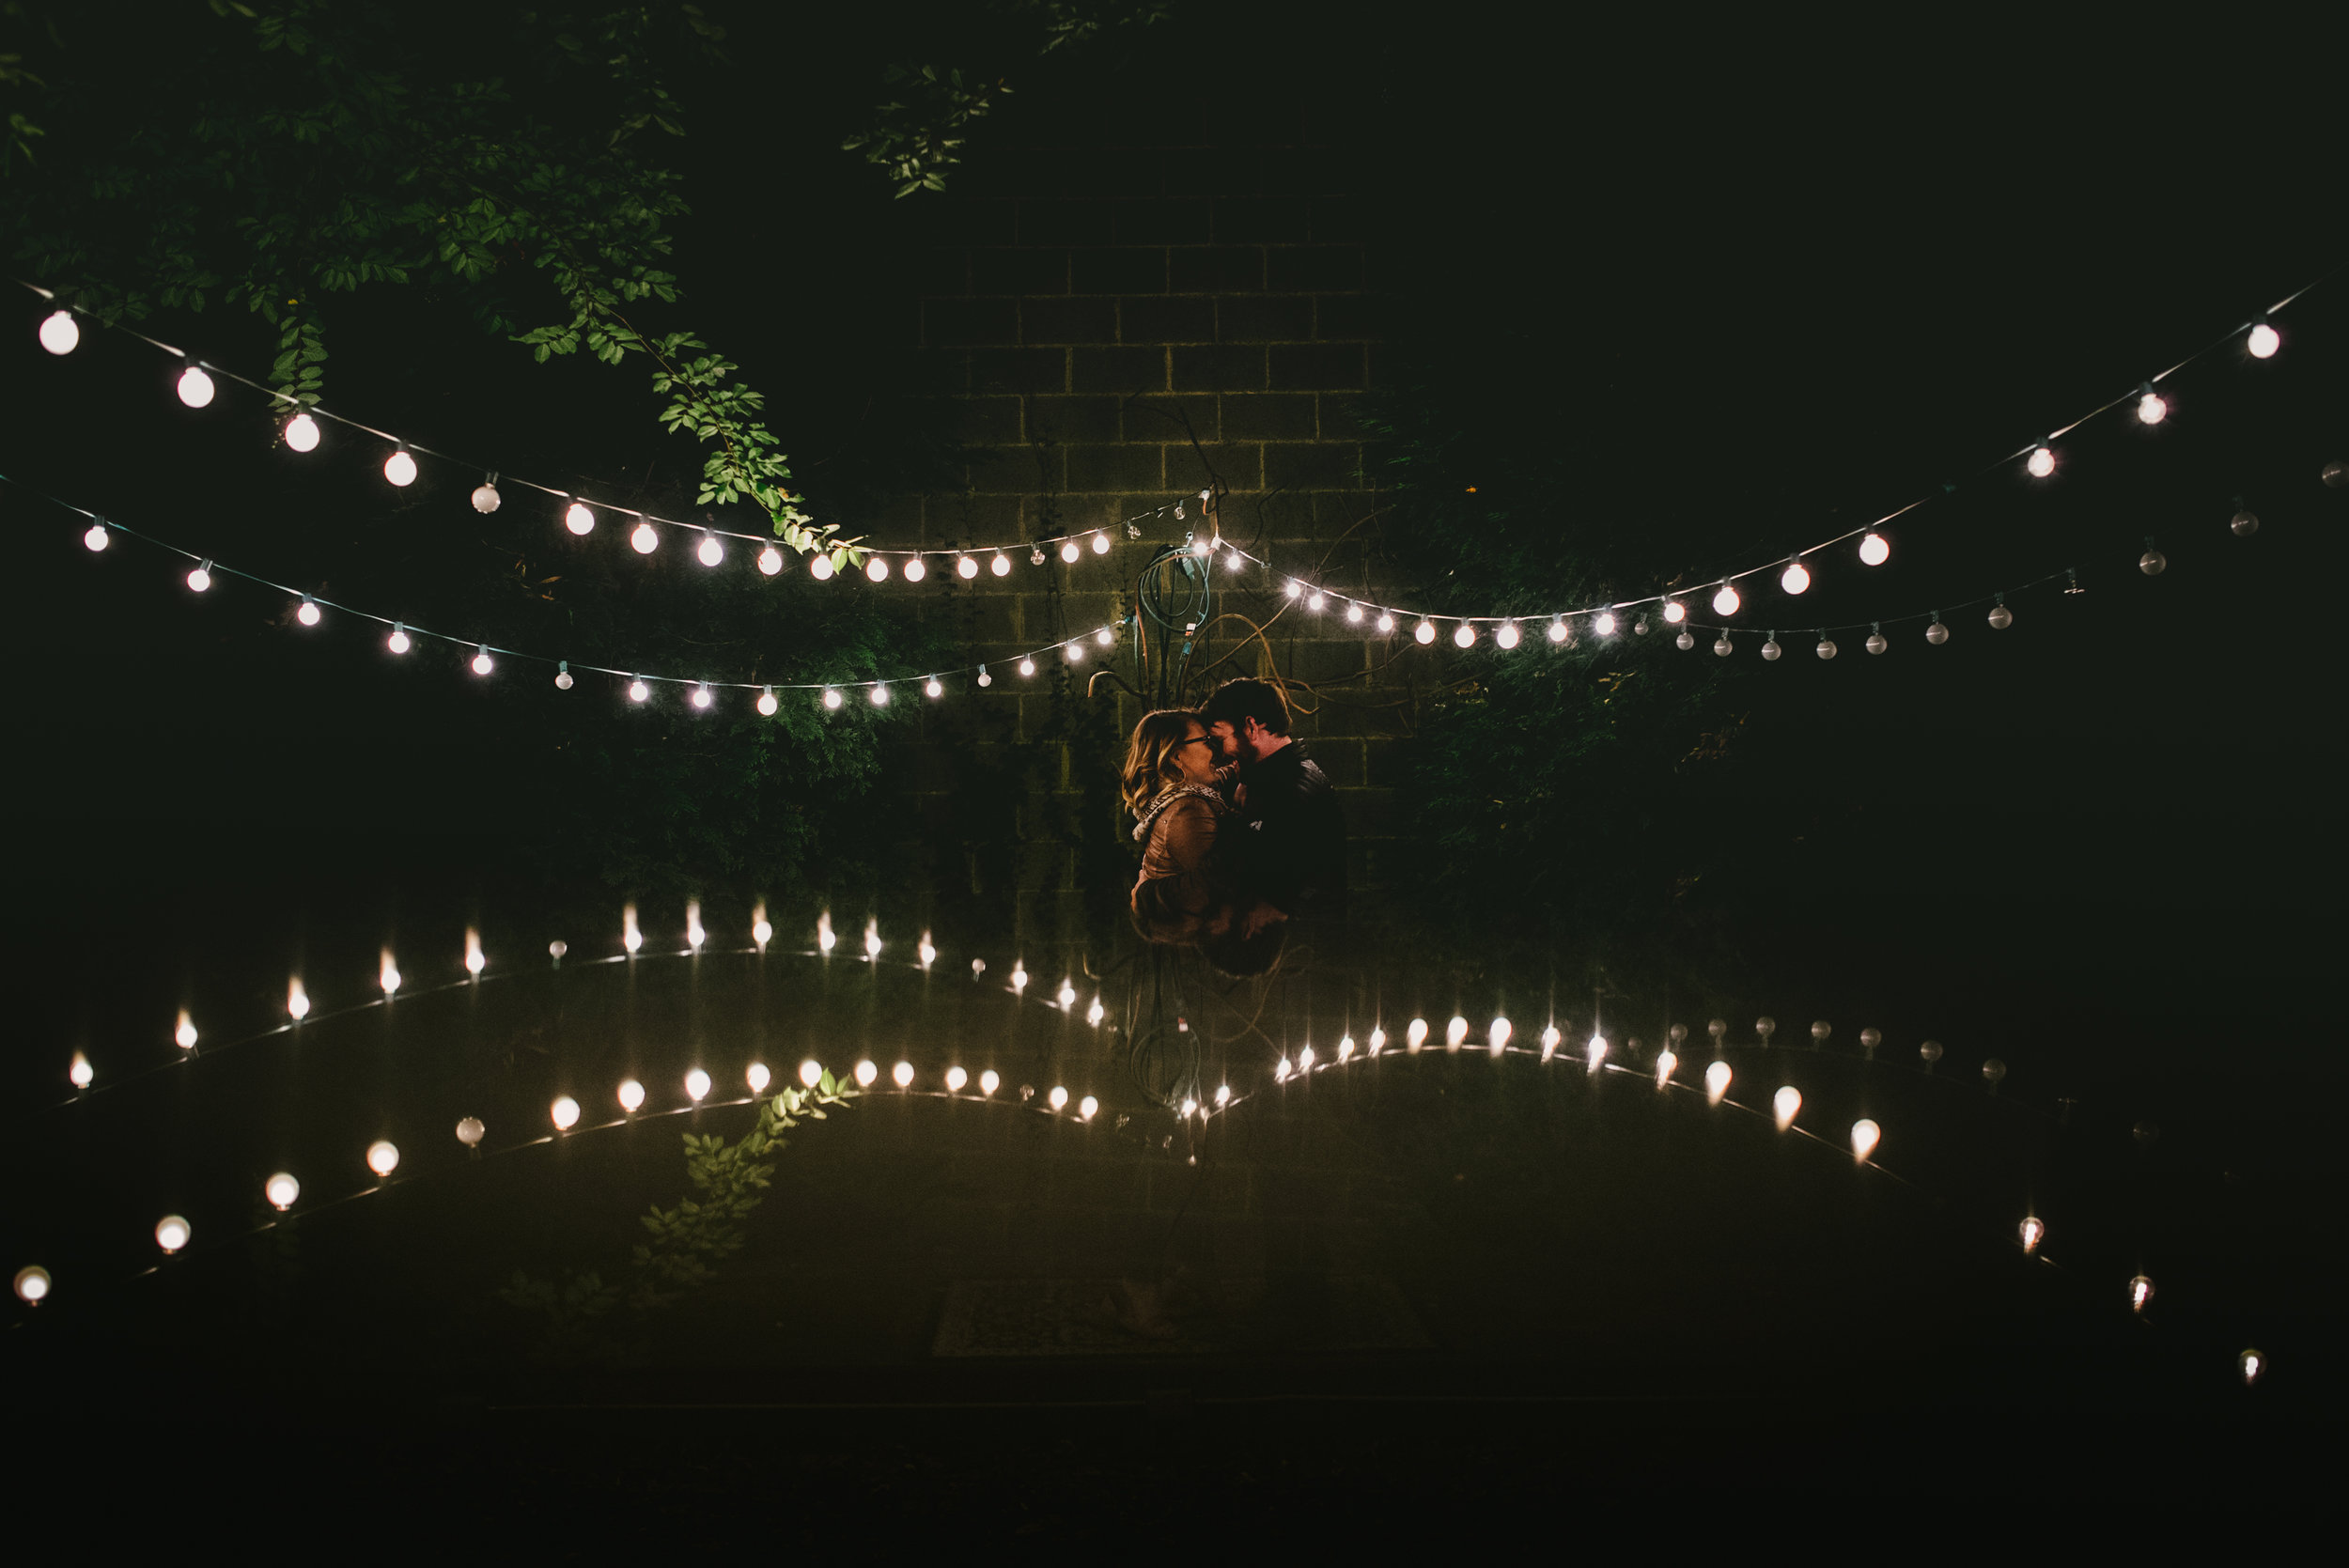 enchanted garden inspired engagement photo on the terrace of Lindley Park Filling Station, Greensboro, North Carolina